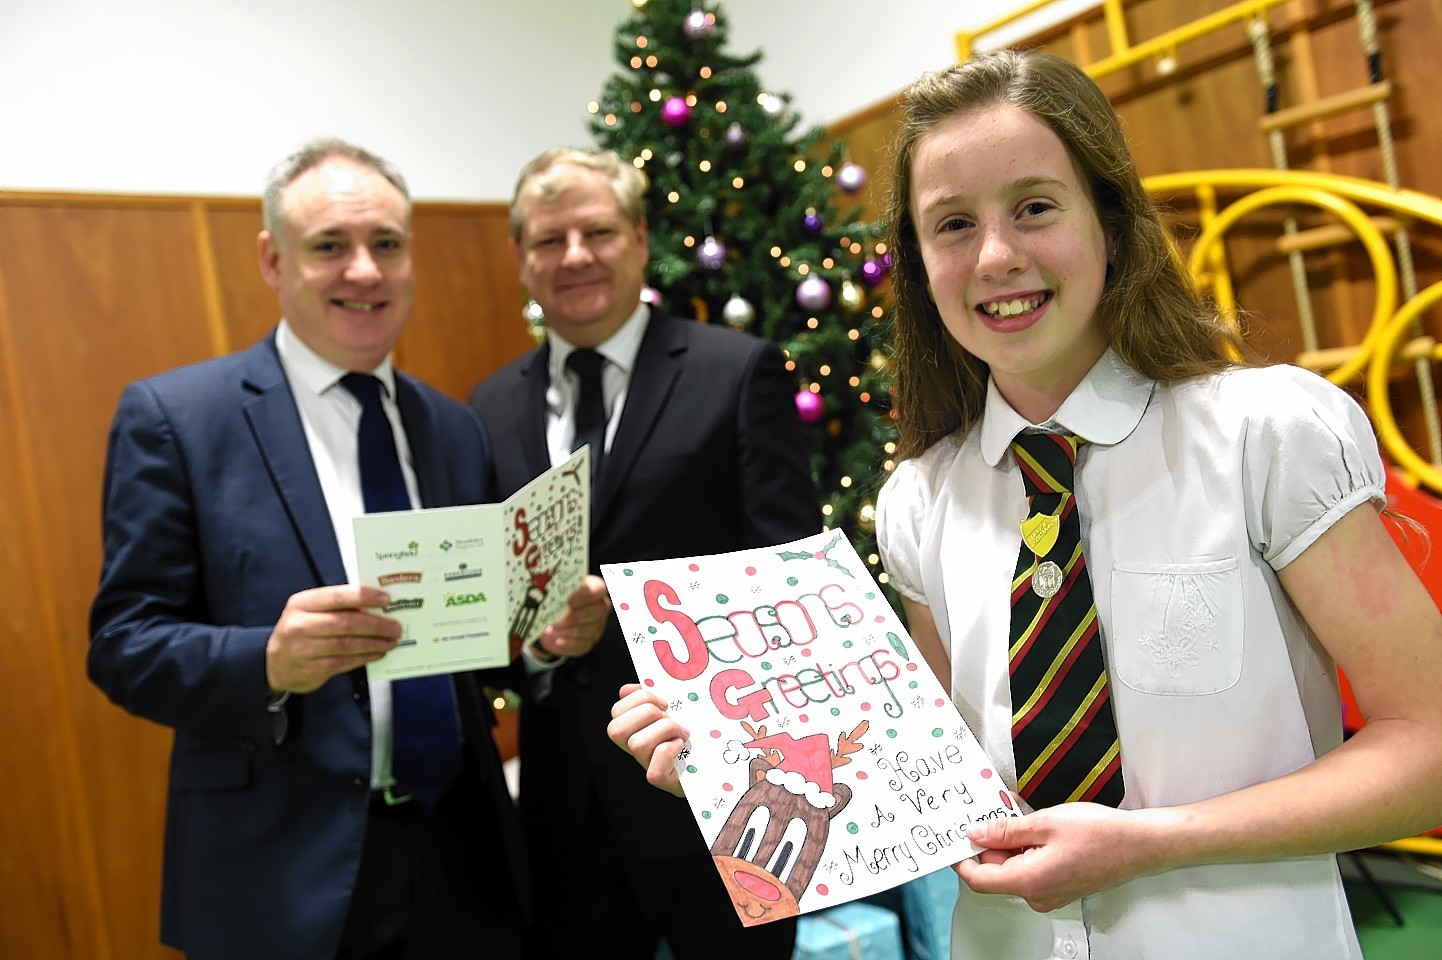 Alanna Pick, with her Christmas Card design, Richard Lochhead, MSP, left, and Angus Robertson, MP, centre. Picture by Gordon Lennox